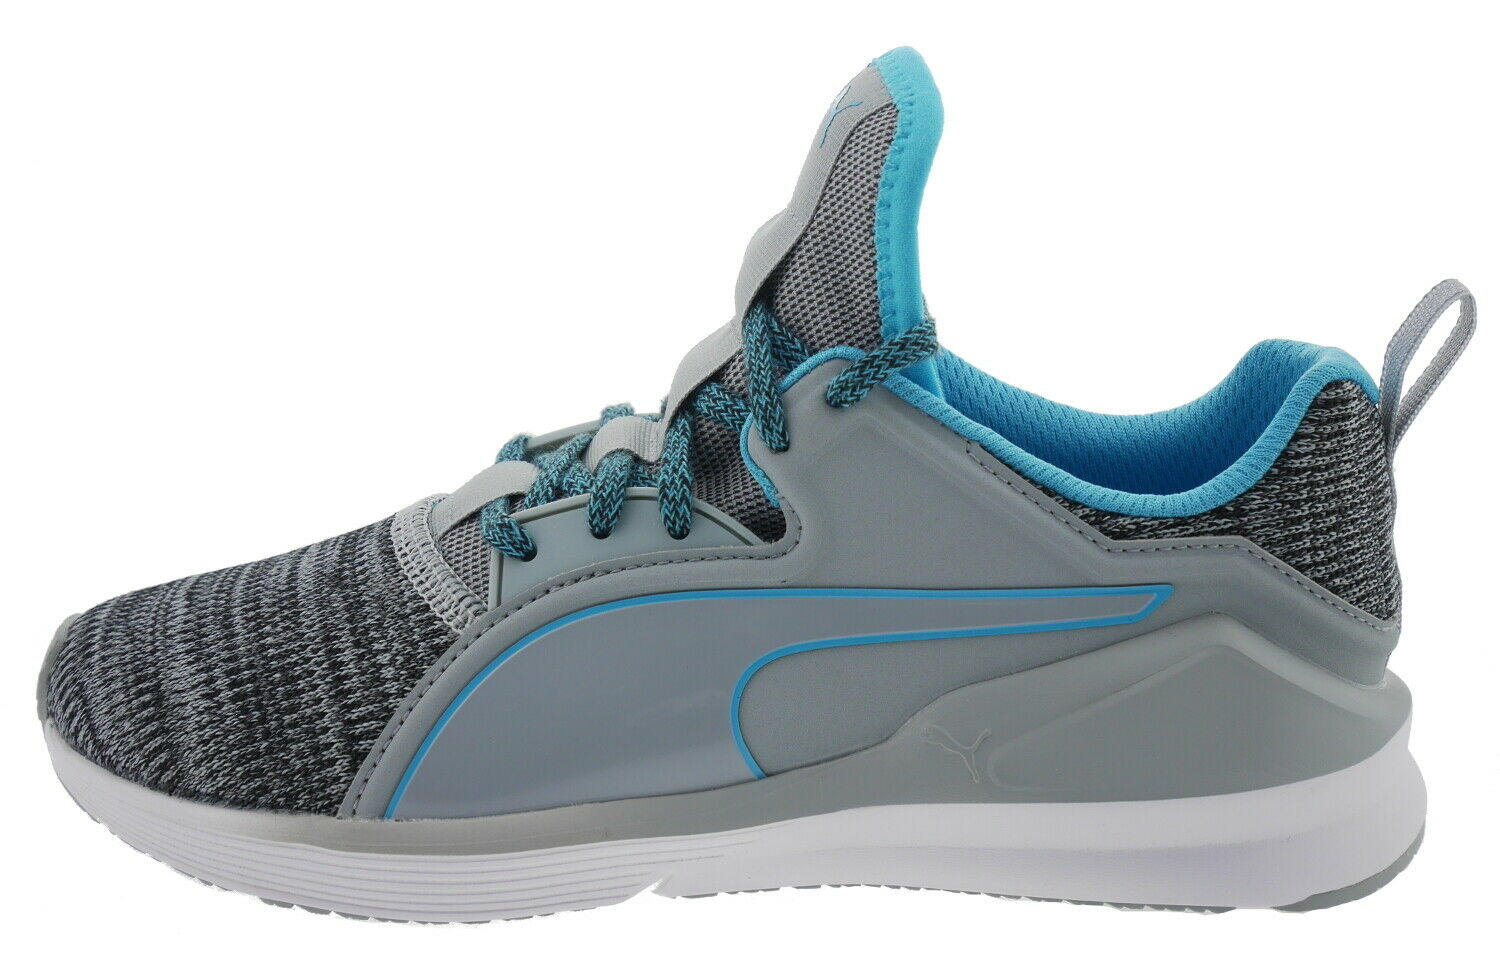 Puma Fierce Lace Knit Wns Sneaker grey blue 180625